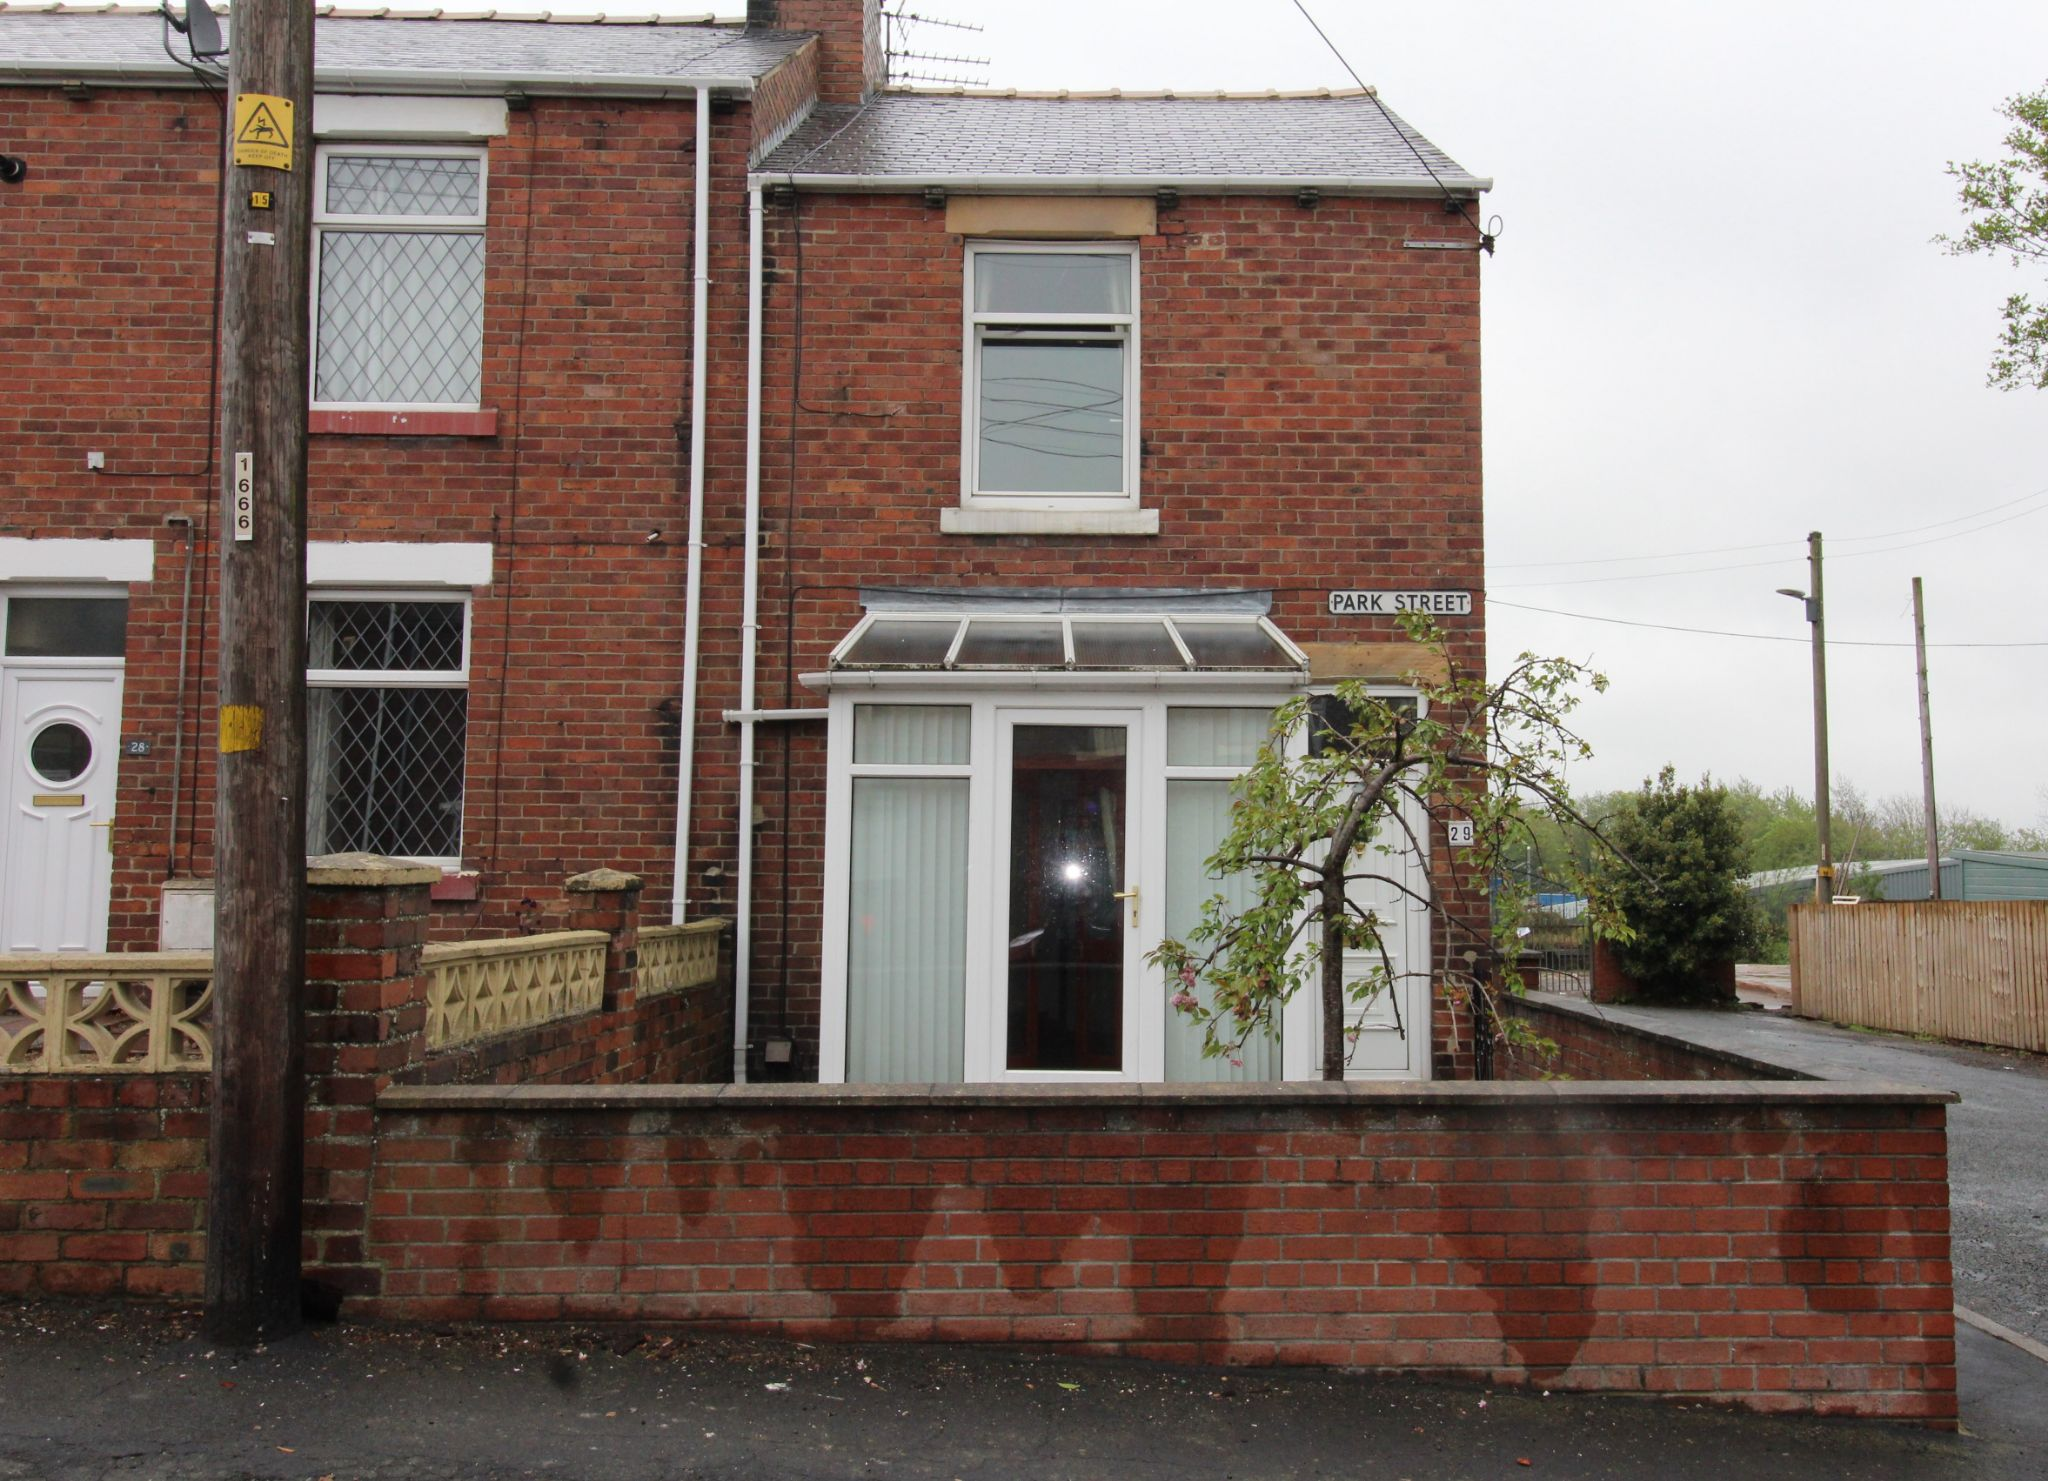 3 bedroom end terraced house For Sale in Willington And Hunwick - Photograph 16.